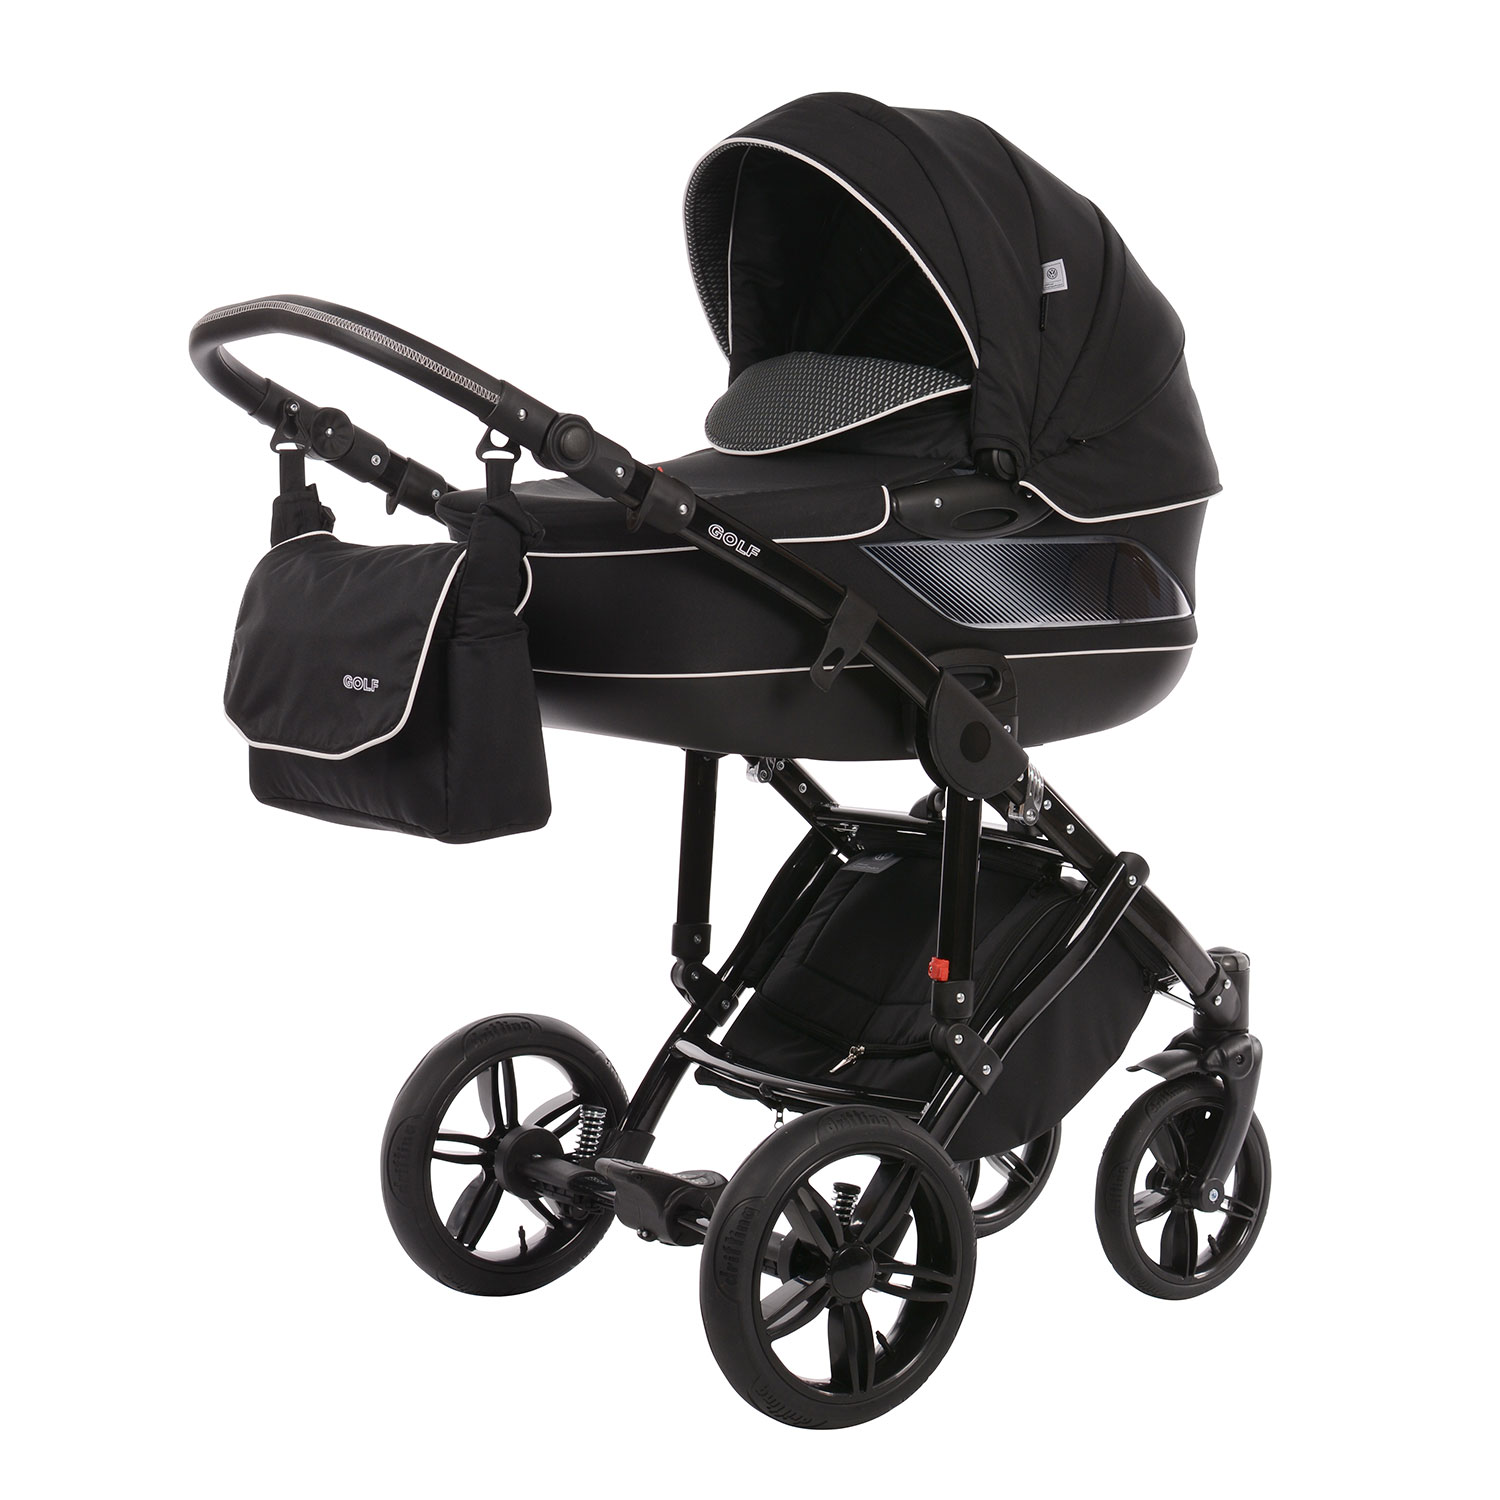 golf knorr kinderwagen und babyschalen von knorr baby. Black Bedroom Furniture Sets. Home Design Ideas